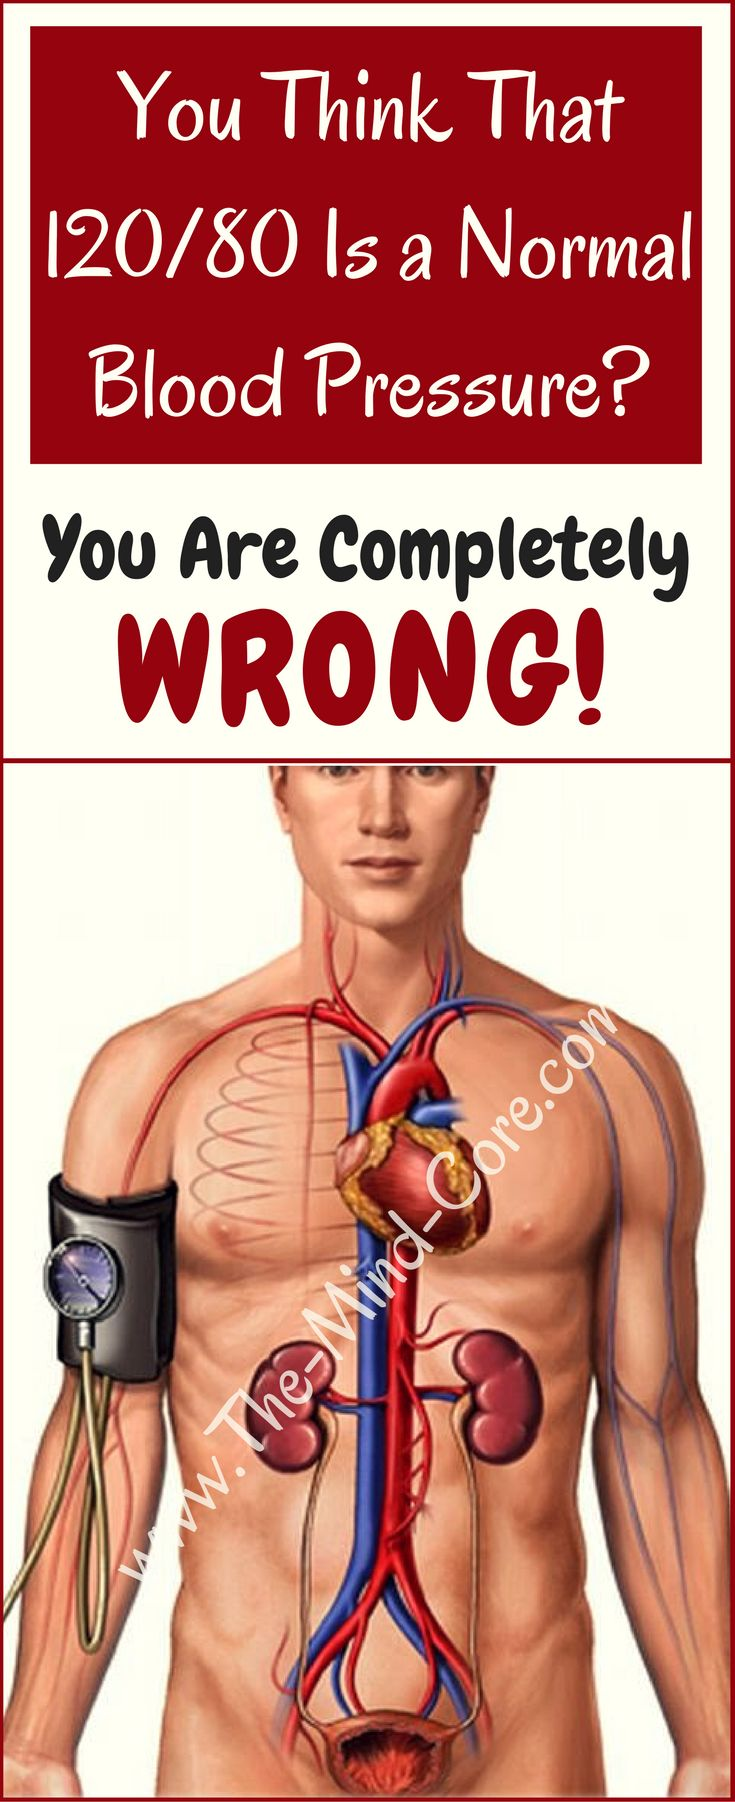 ATTENTION: You Think That 120/80 Is A Normal Blood Pressure?! Here's the Answer...